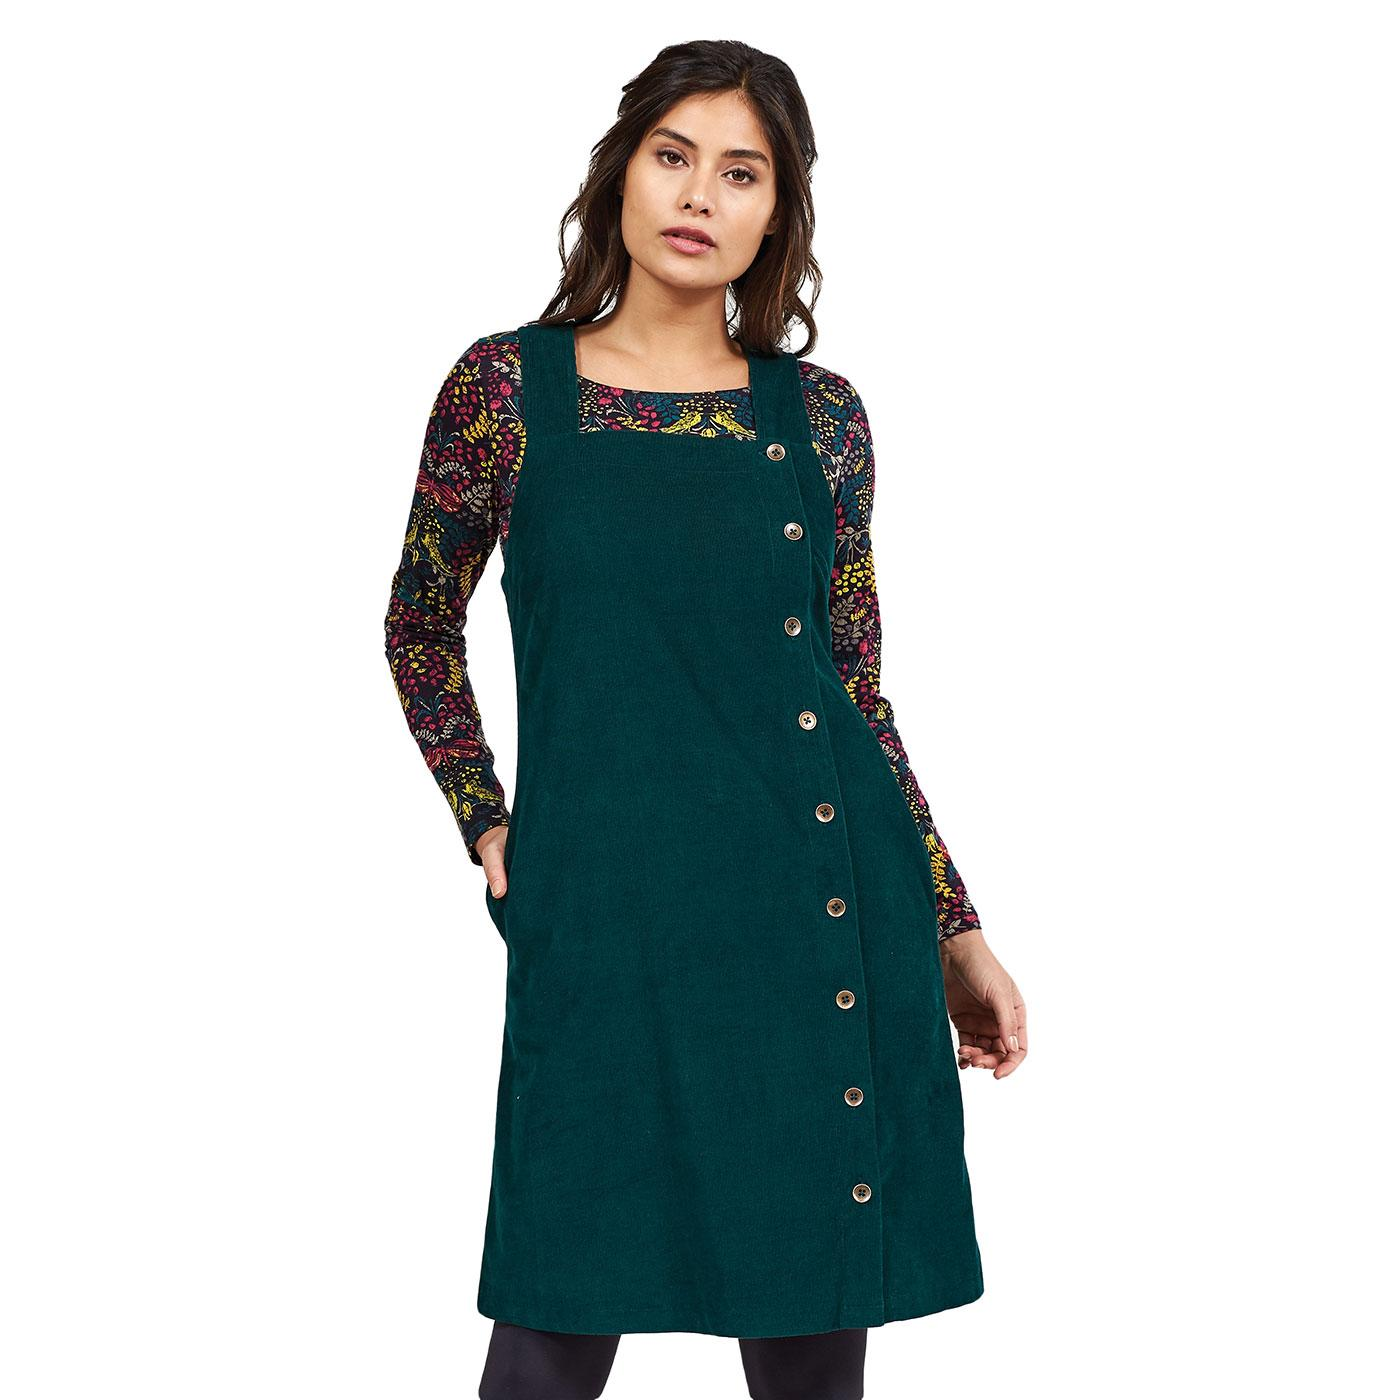 NOMADS Retro 70s Cord Button Pinafore Dress -Green